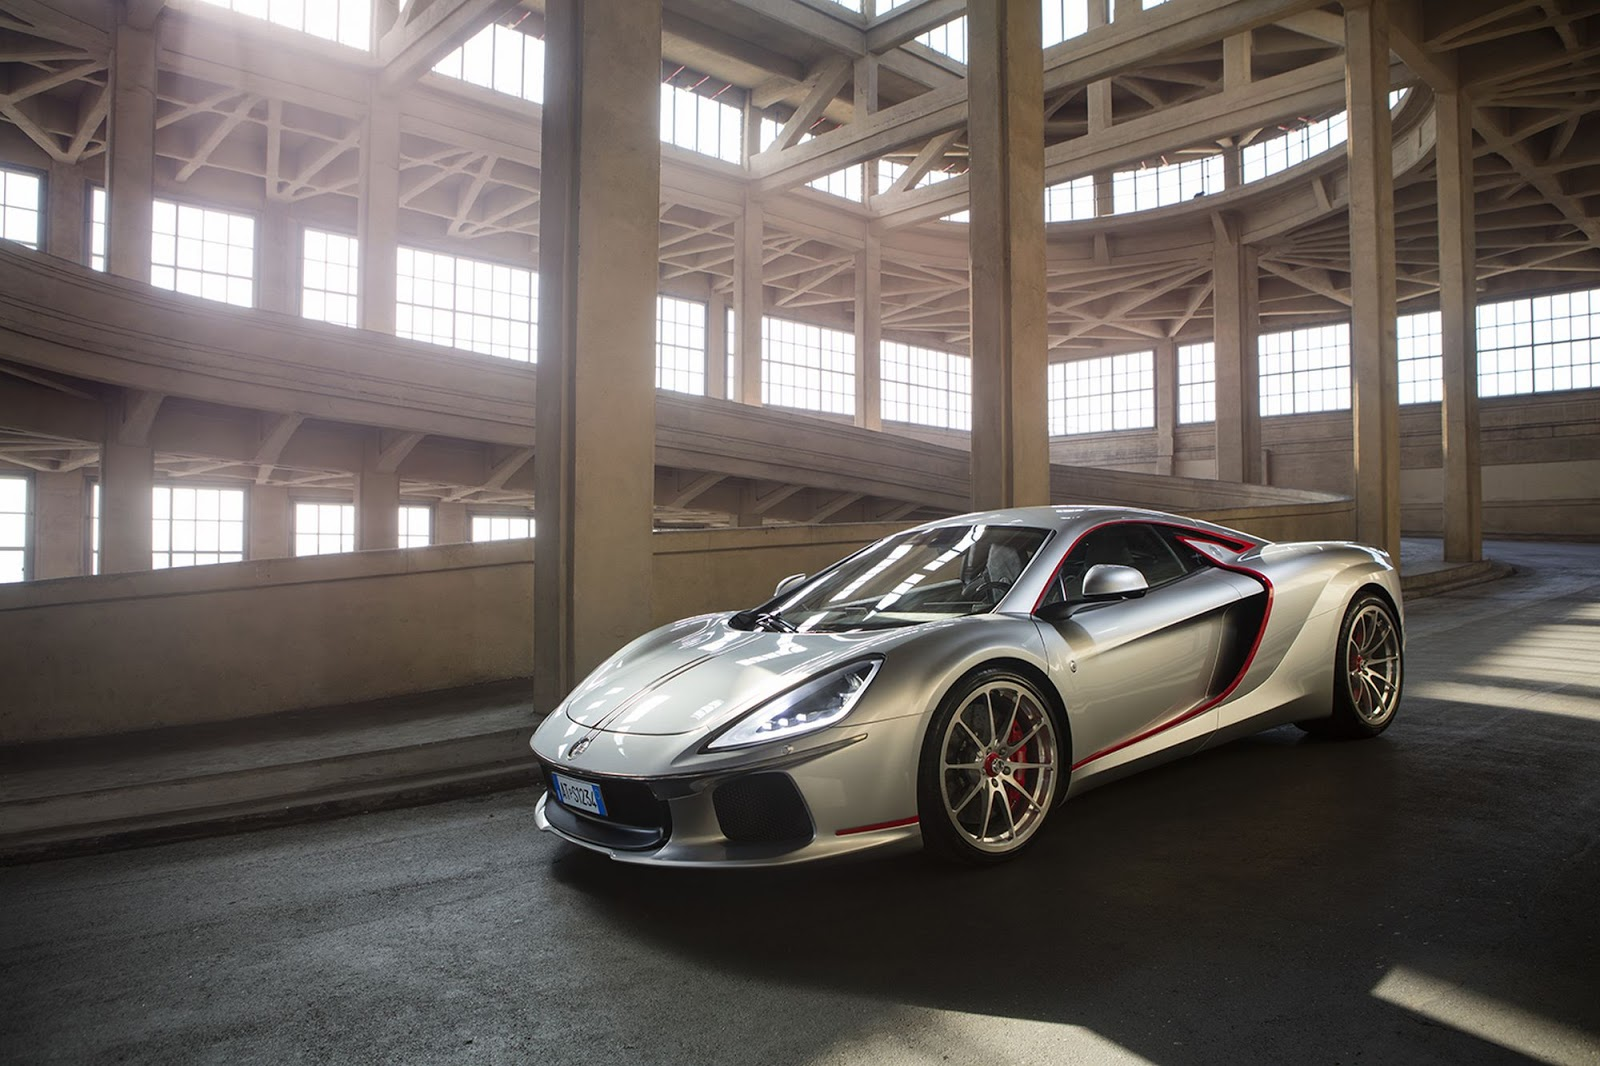 ATS Drops New Gallery Of Sleek GT Supercar